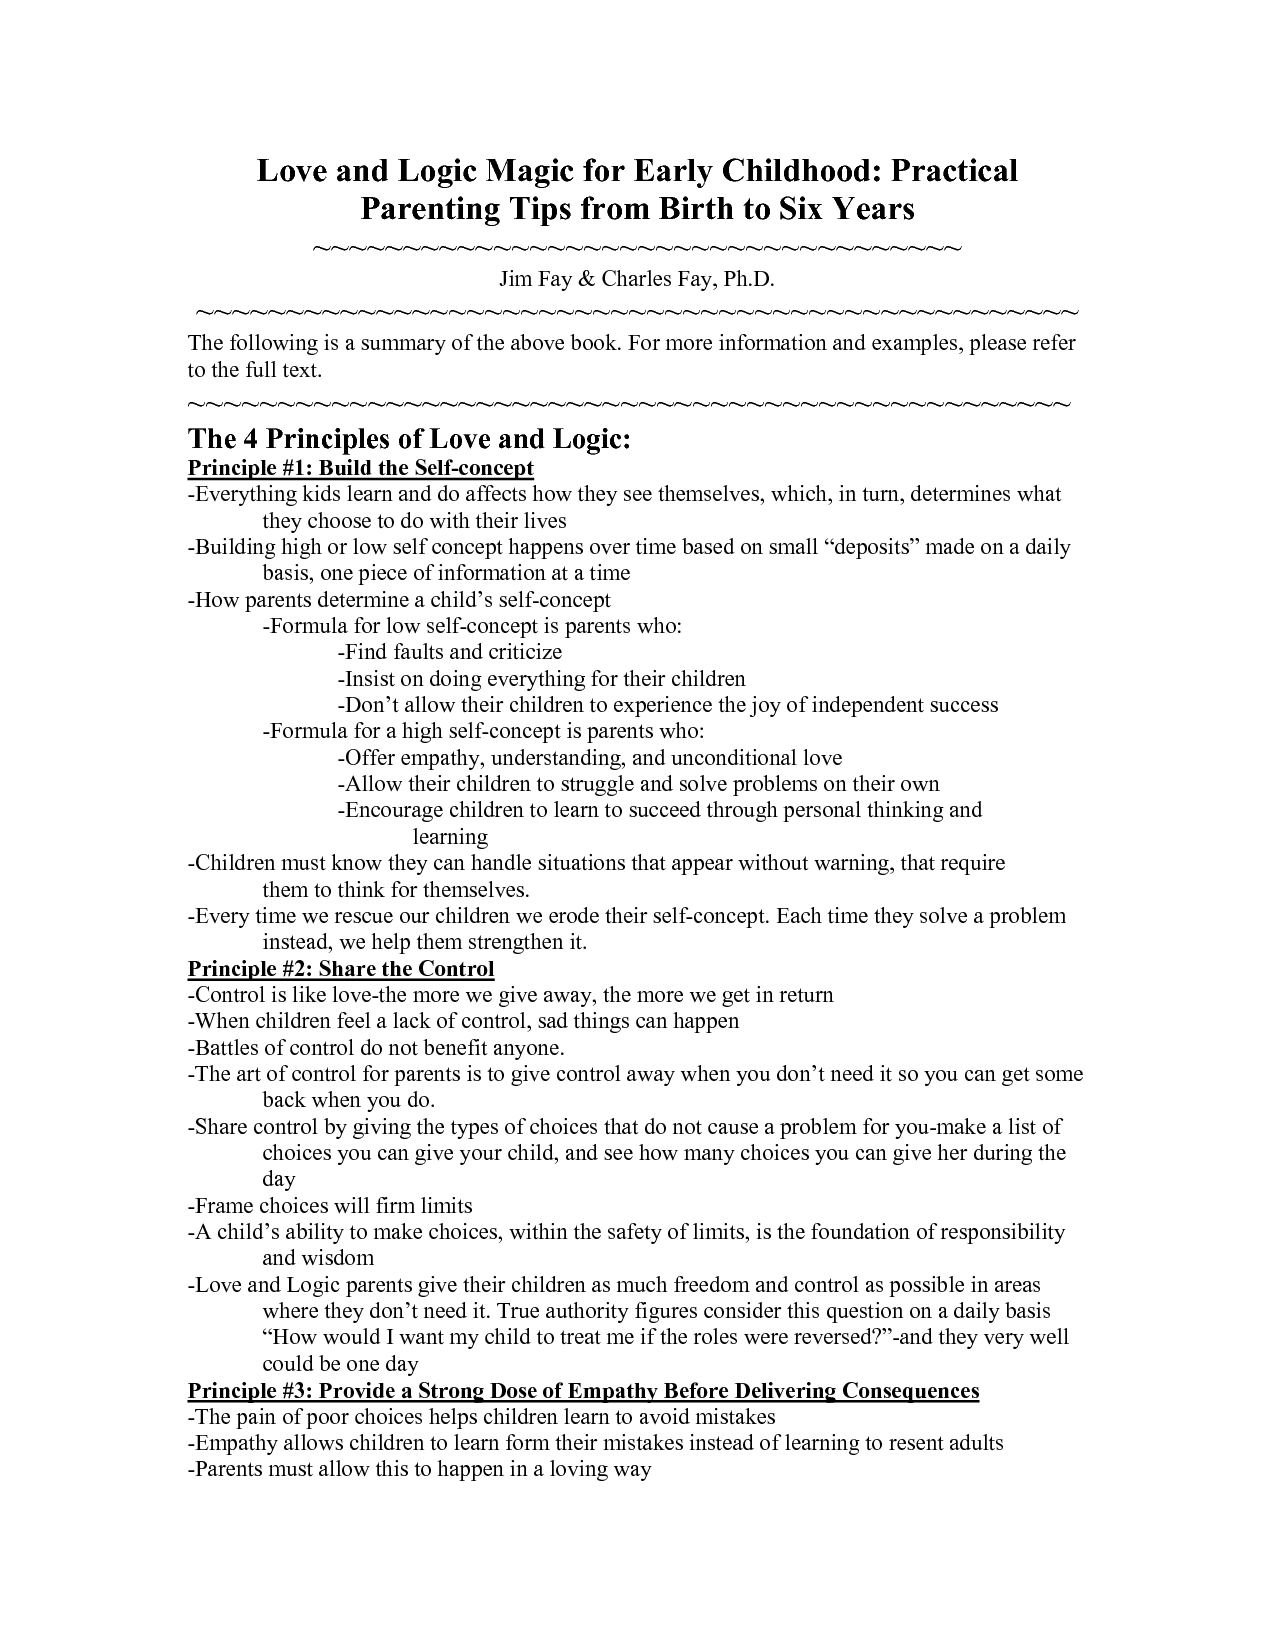 Love and Logic Magic for Early Childhood Practical Parenting Tips